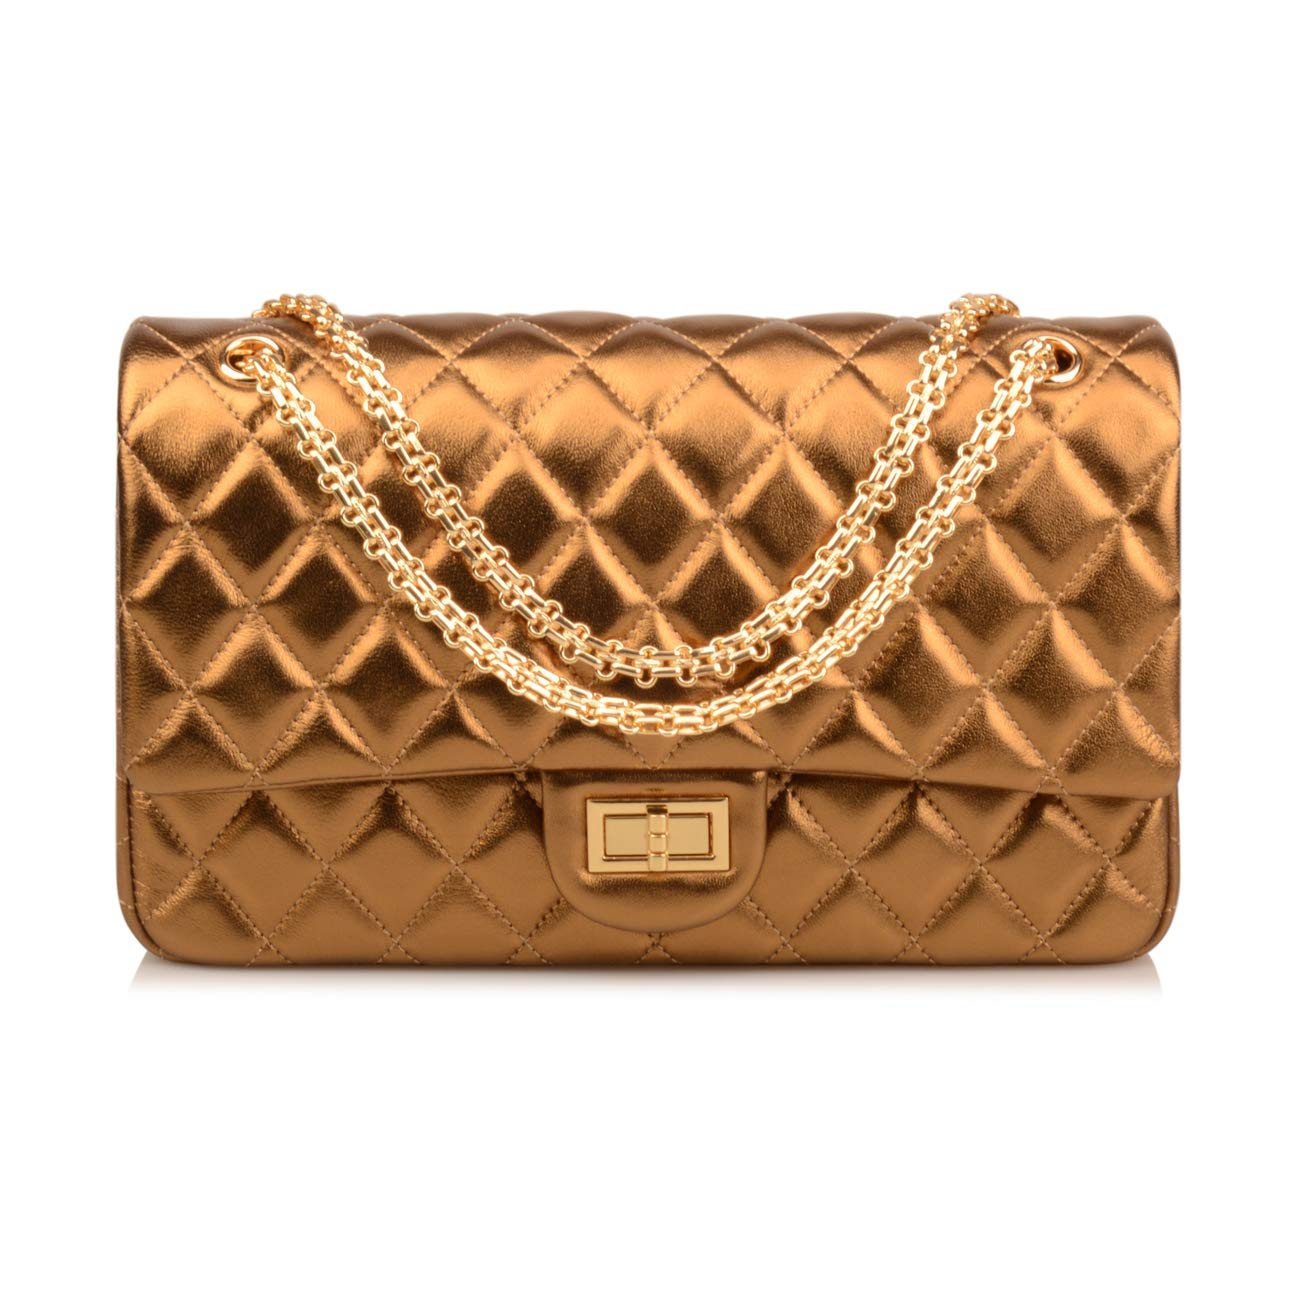 Ainifeel Women's Genuine Leather Quilted Chain Bag Hobo Bag Gold Hardware On (Large, P)